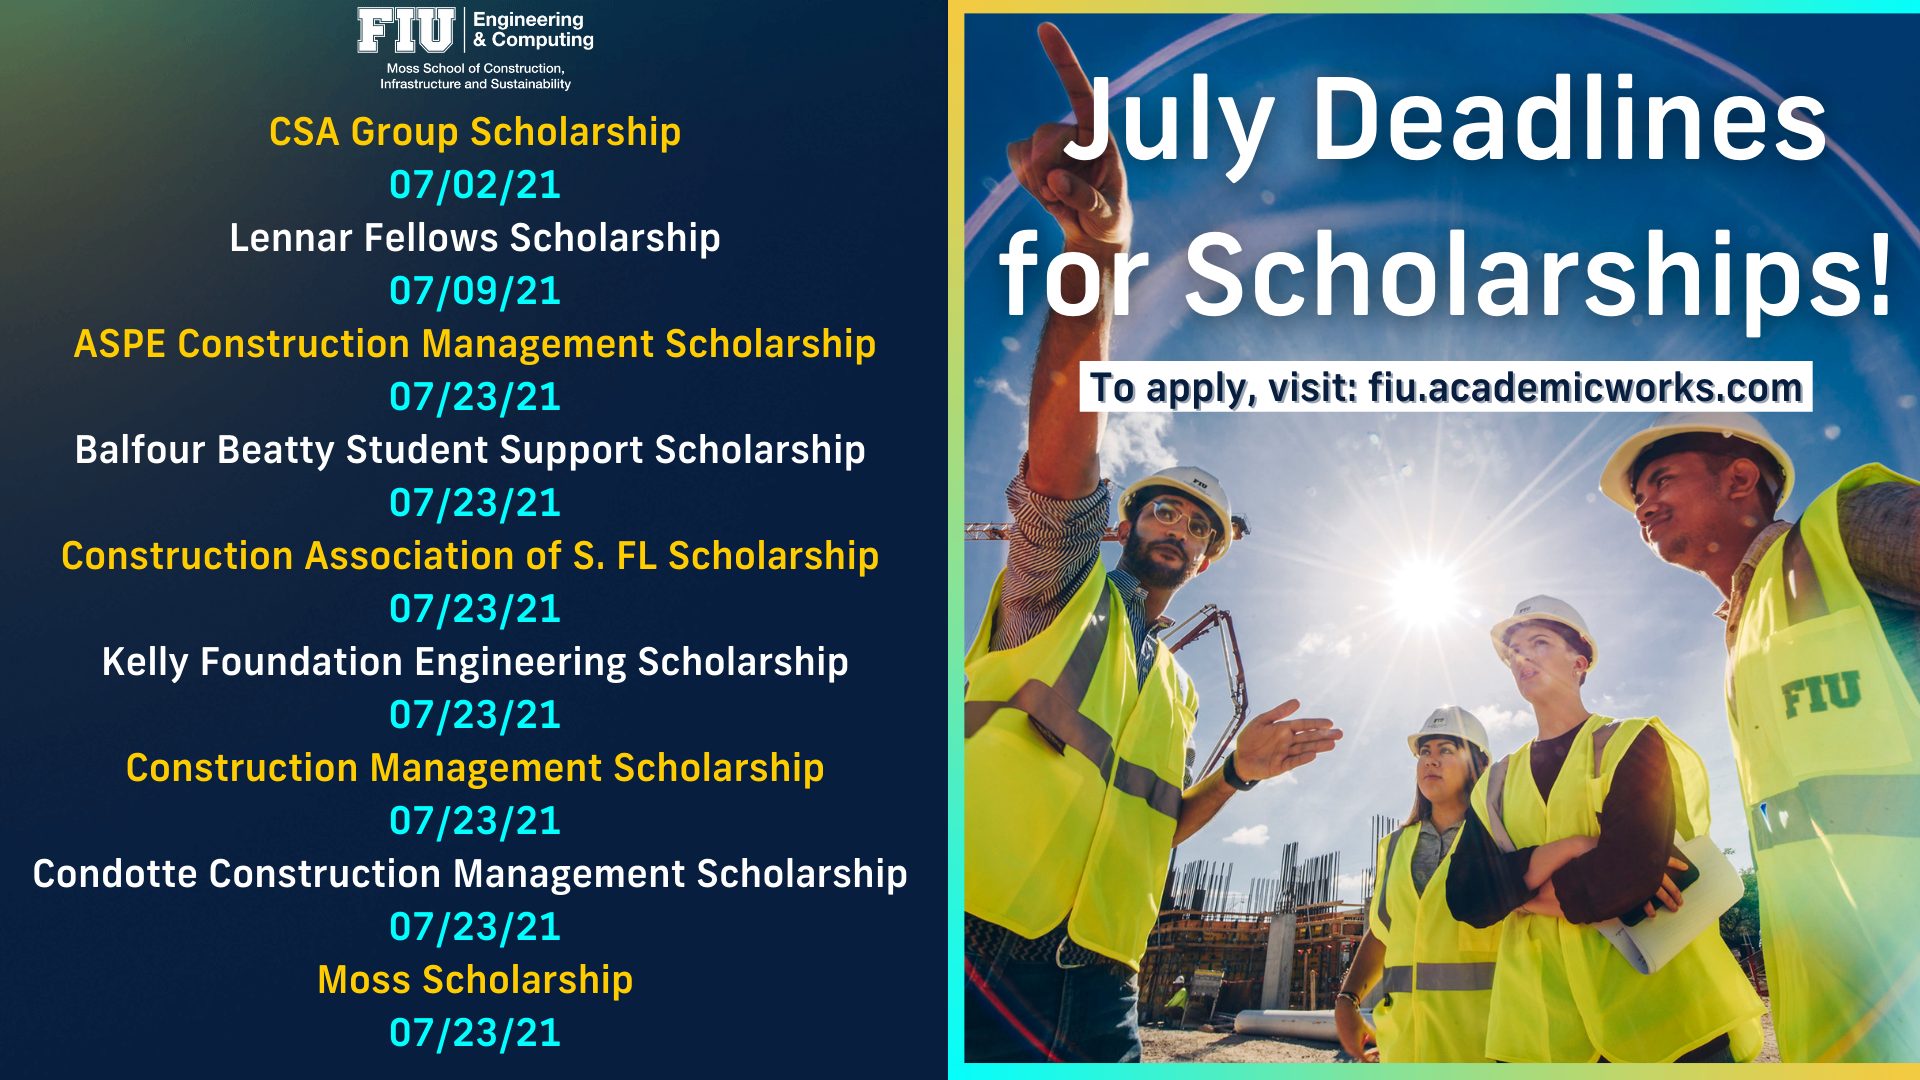 July Deadlines for Scholarships! To apply, visit: fiu.academicworks.com CSA Group Scholarship 07/02/21 Lennar Fellows Scholarship 07/09/21 ASPE Construction Management Scholarship 07/23/21 Balfour Beatty Student Support Scholarship  07/23/21 Construction Association of S. FL Scholarship  07/23/21 Kelly Foundation Engineering Scholarship 07/23/21 Construction Management Scholarship 07/23/21 Condotte Construction Management Scholarship  07/23/21 Moss Scholarship 07/23/21